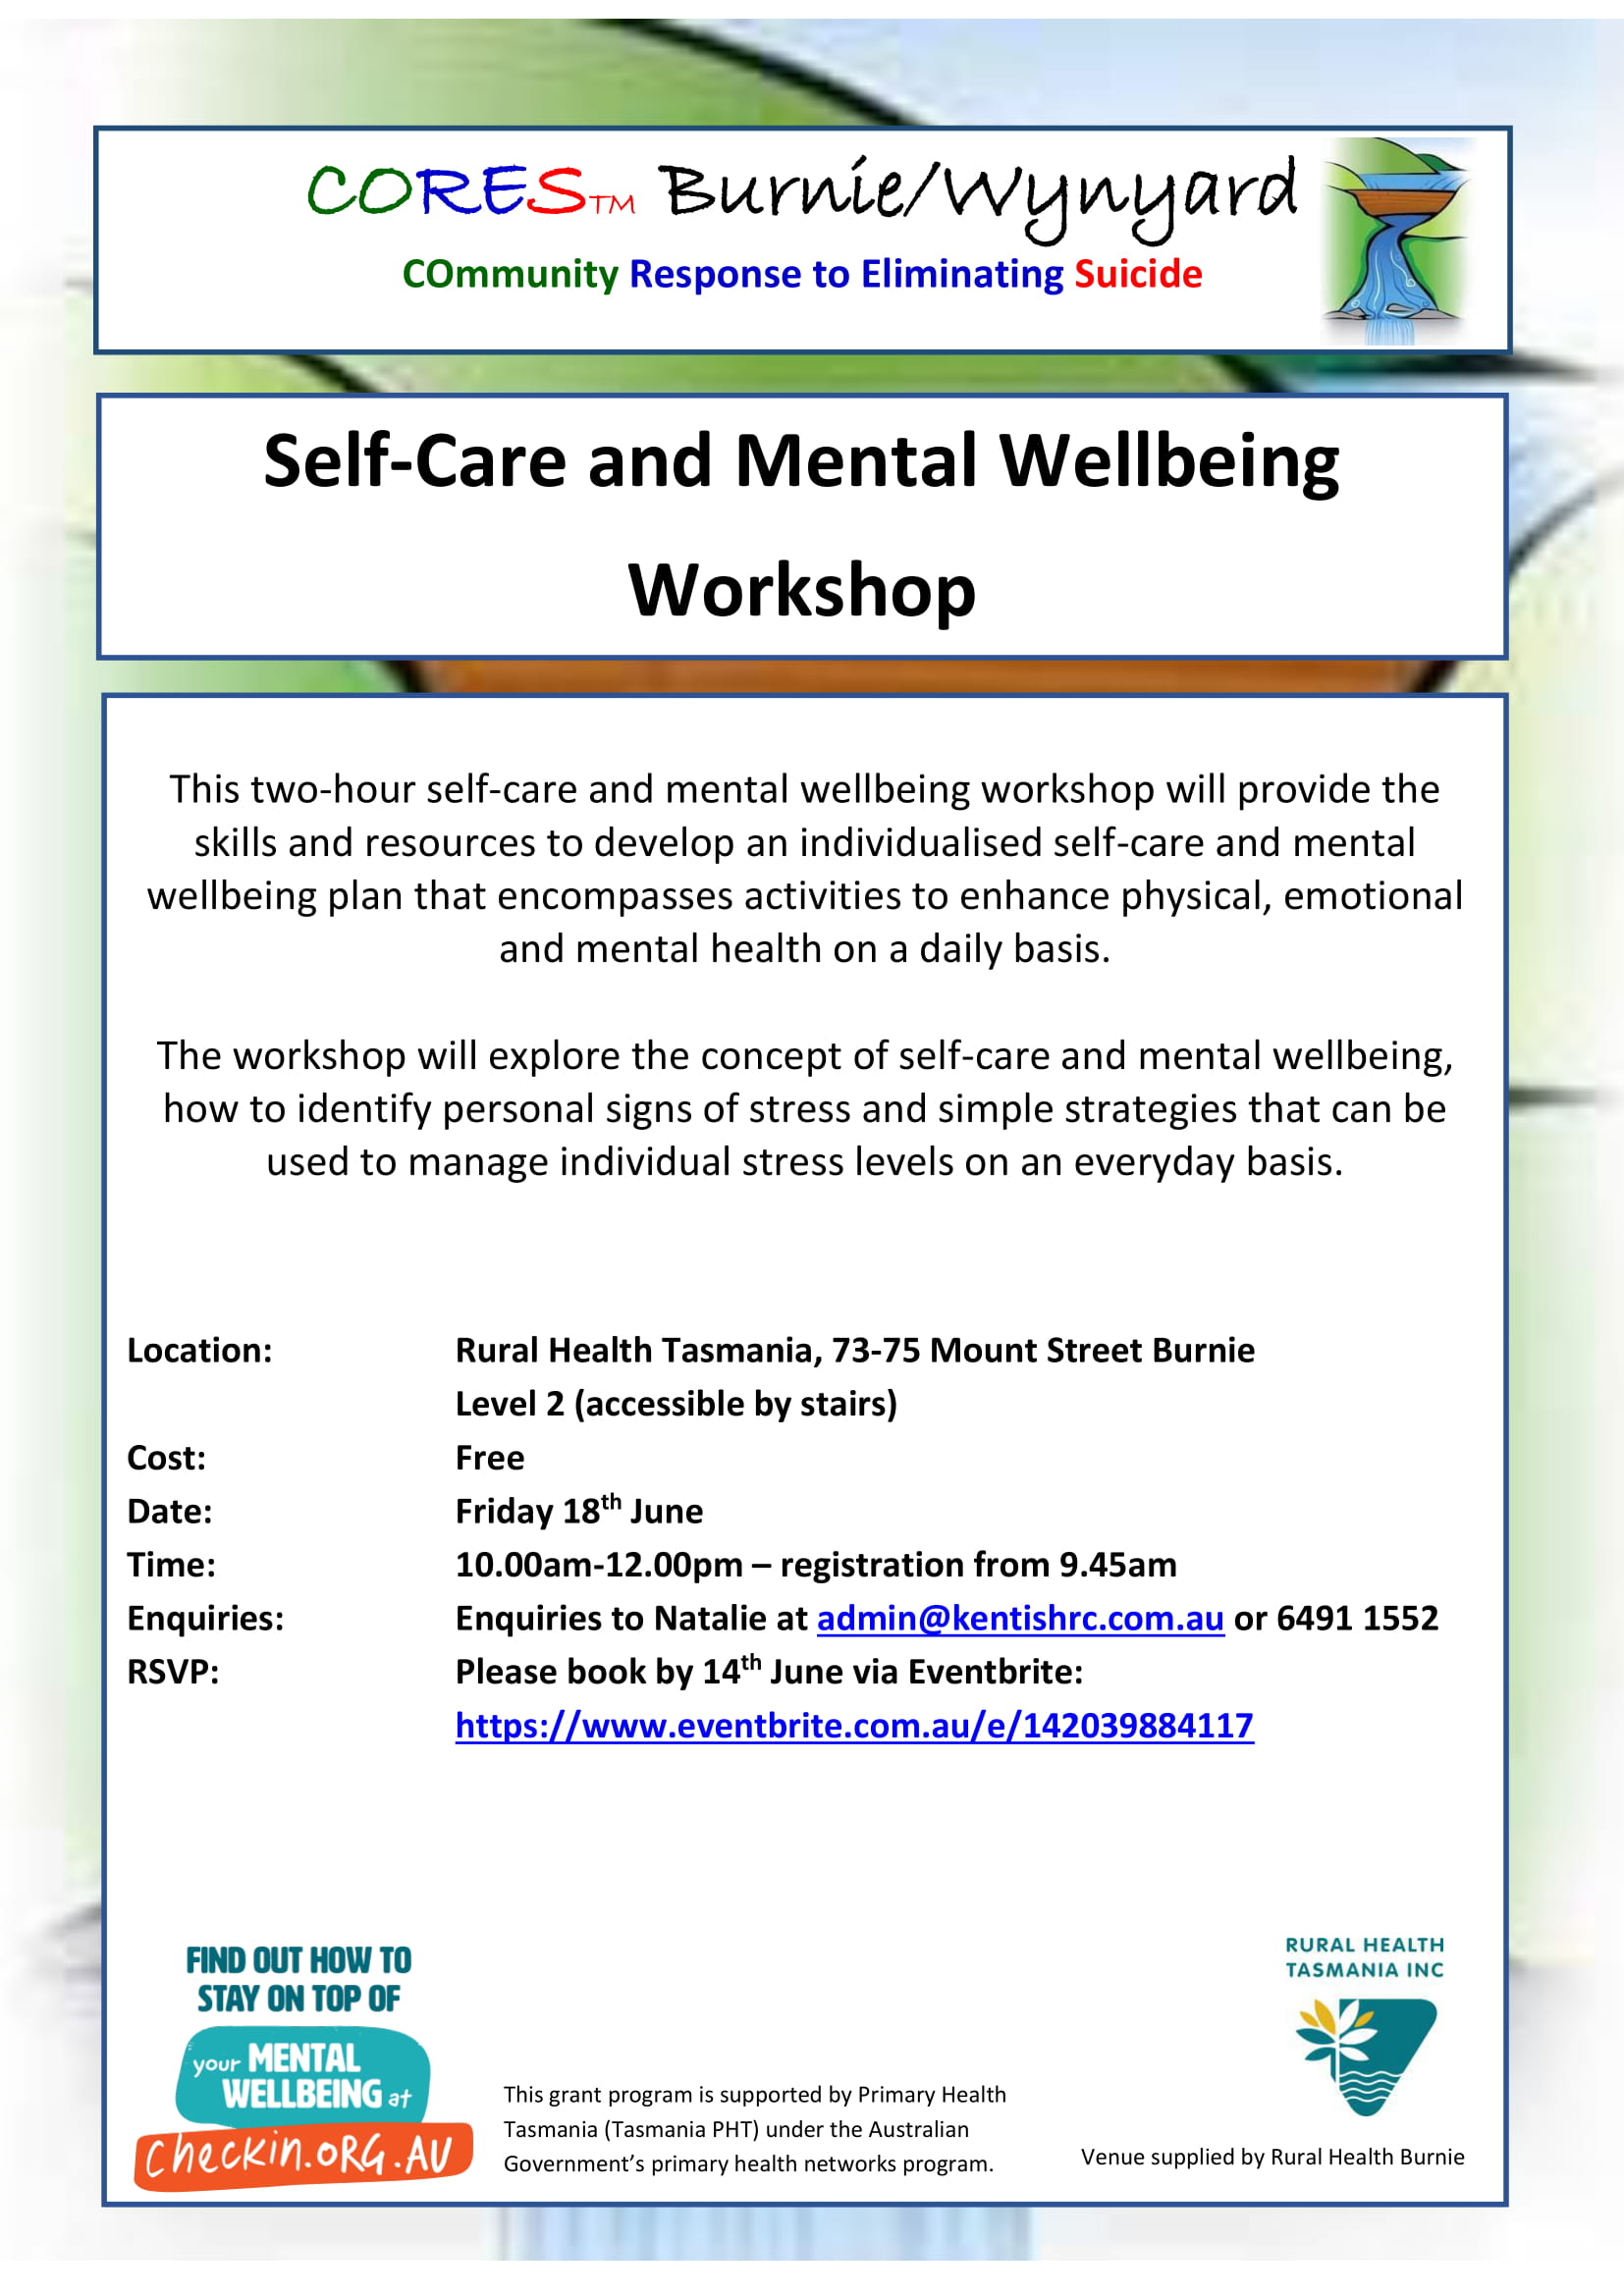 CORES Self-Care and Mental Wellbeing Burnie June 2021-1